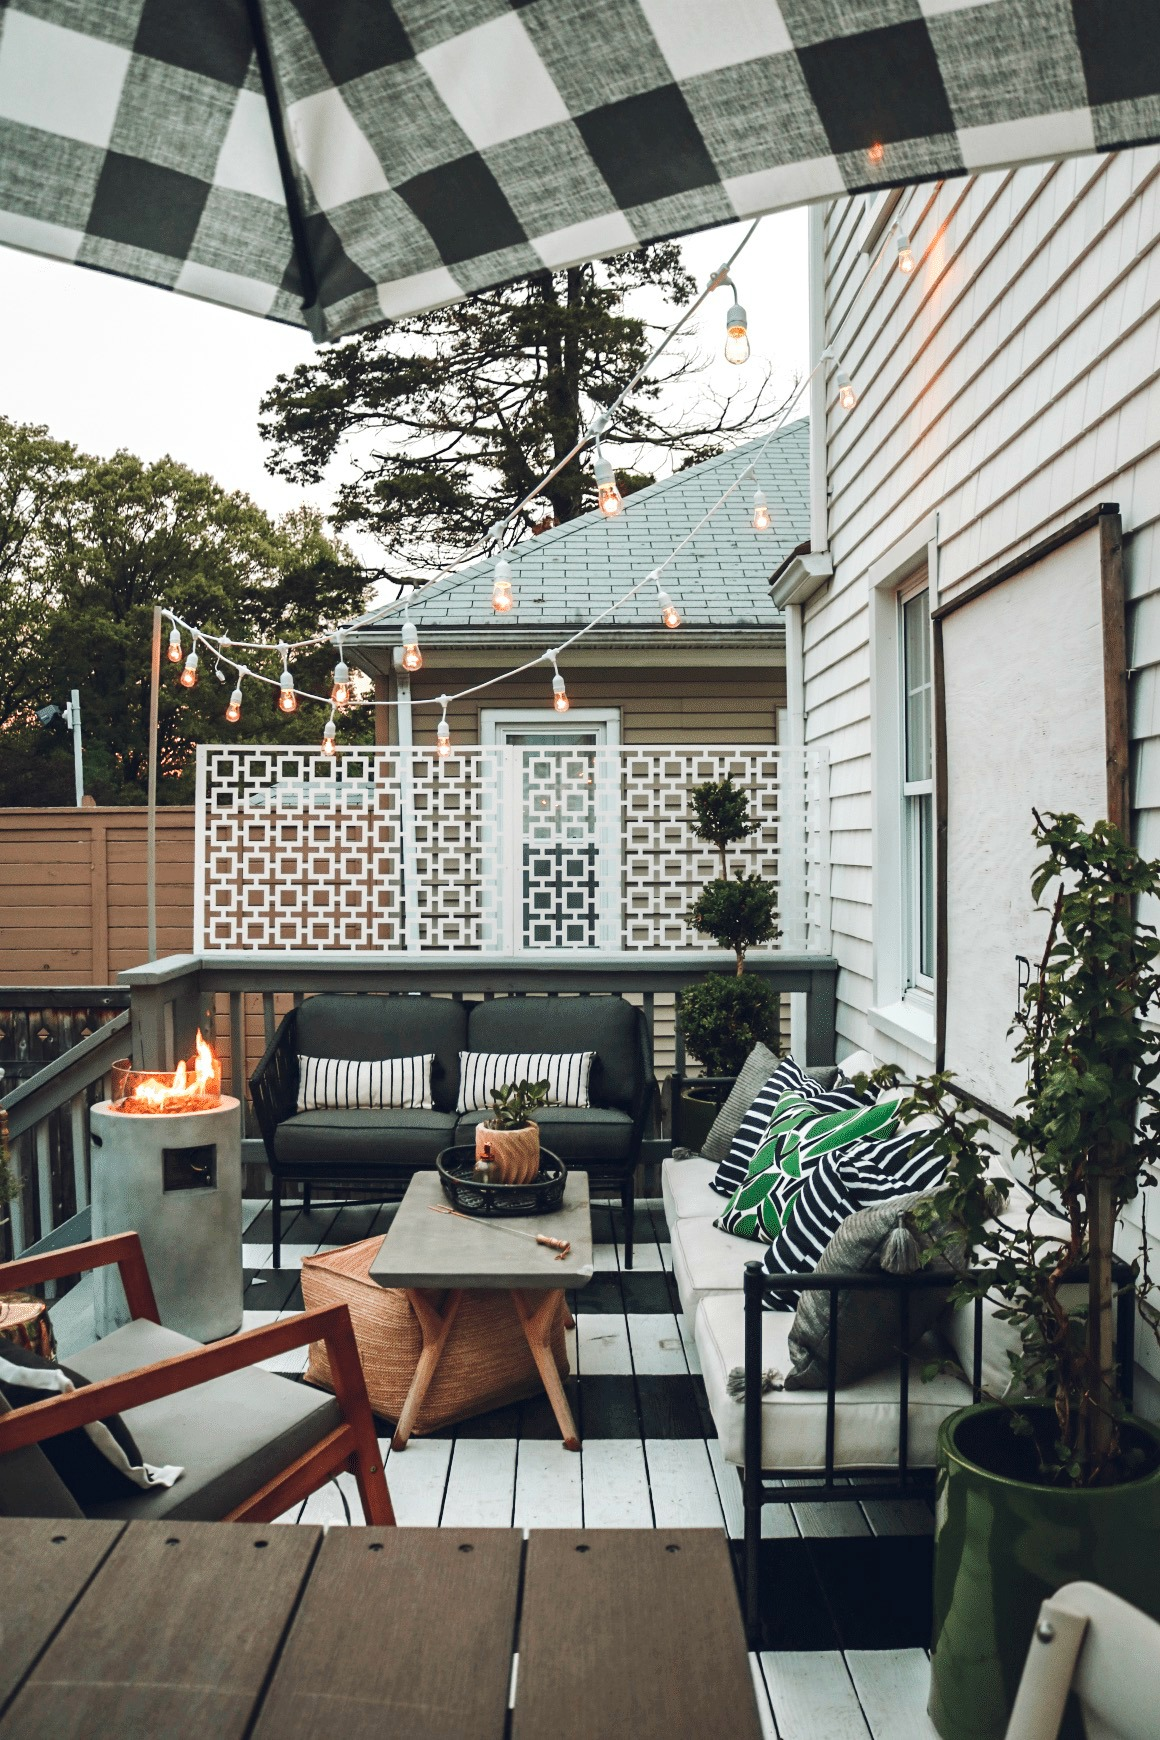 Outdoor patio with striped decking